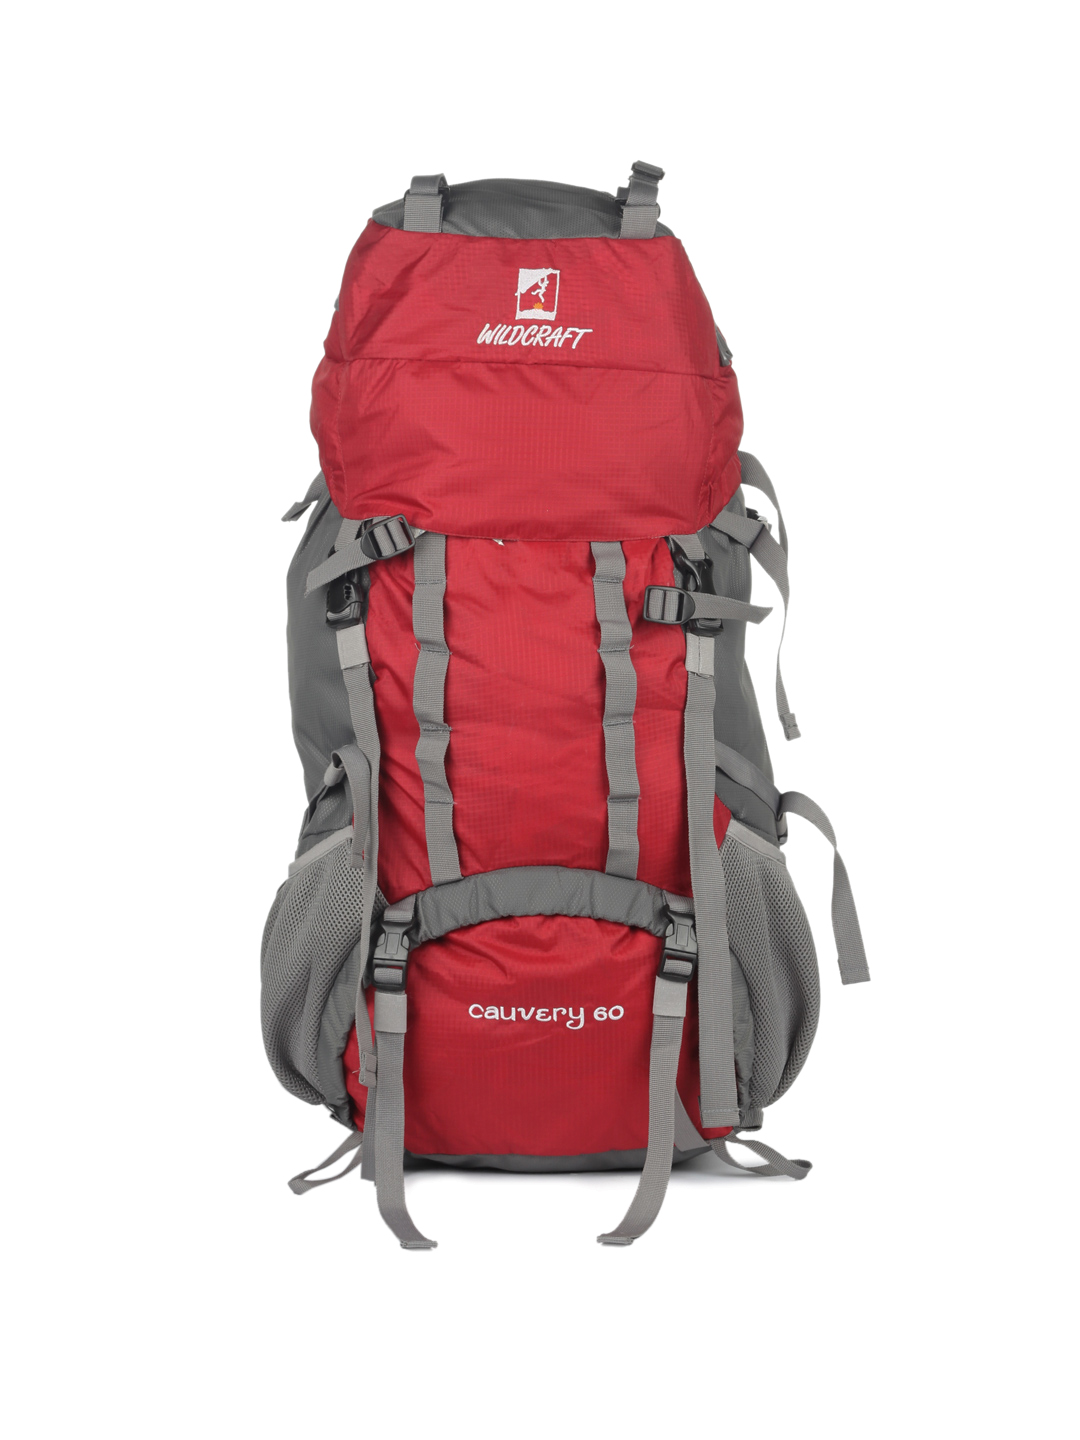 Wildcraft Unisex Cauvery Red Rucksack